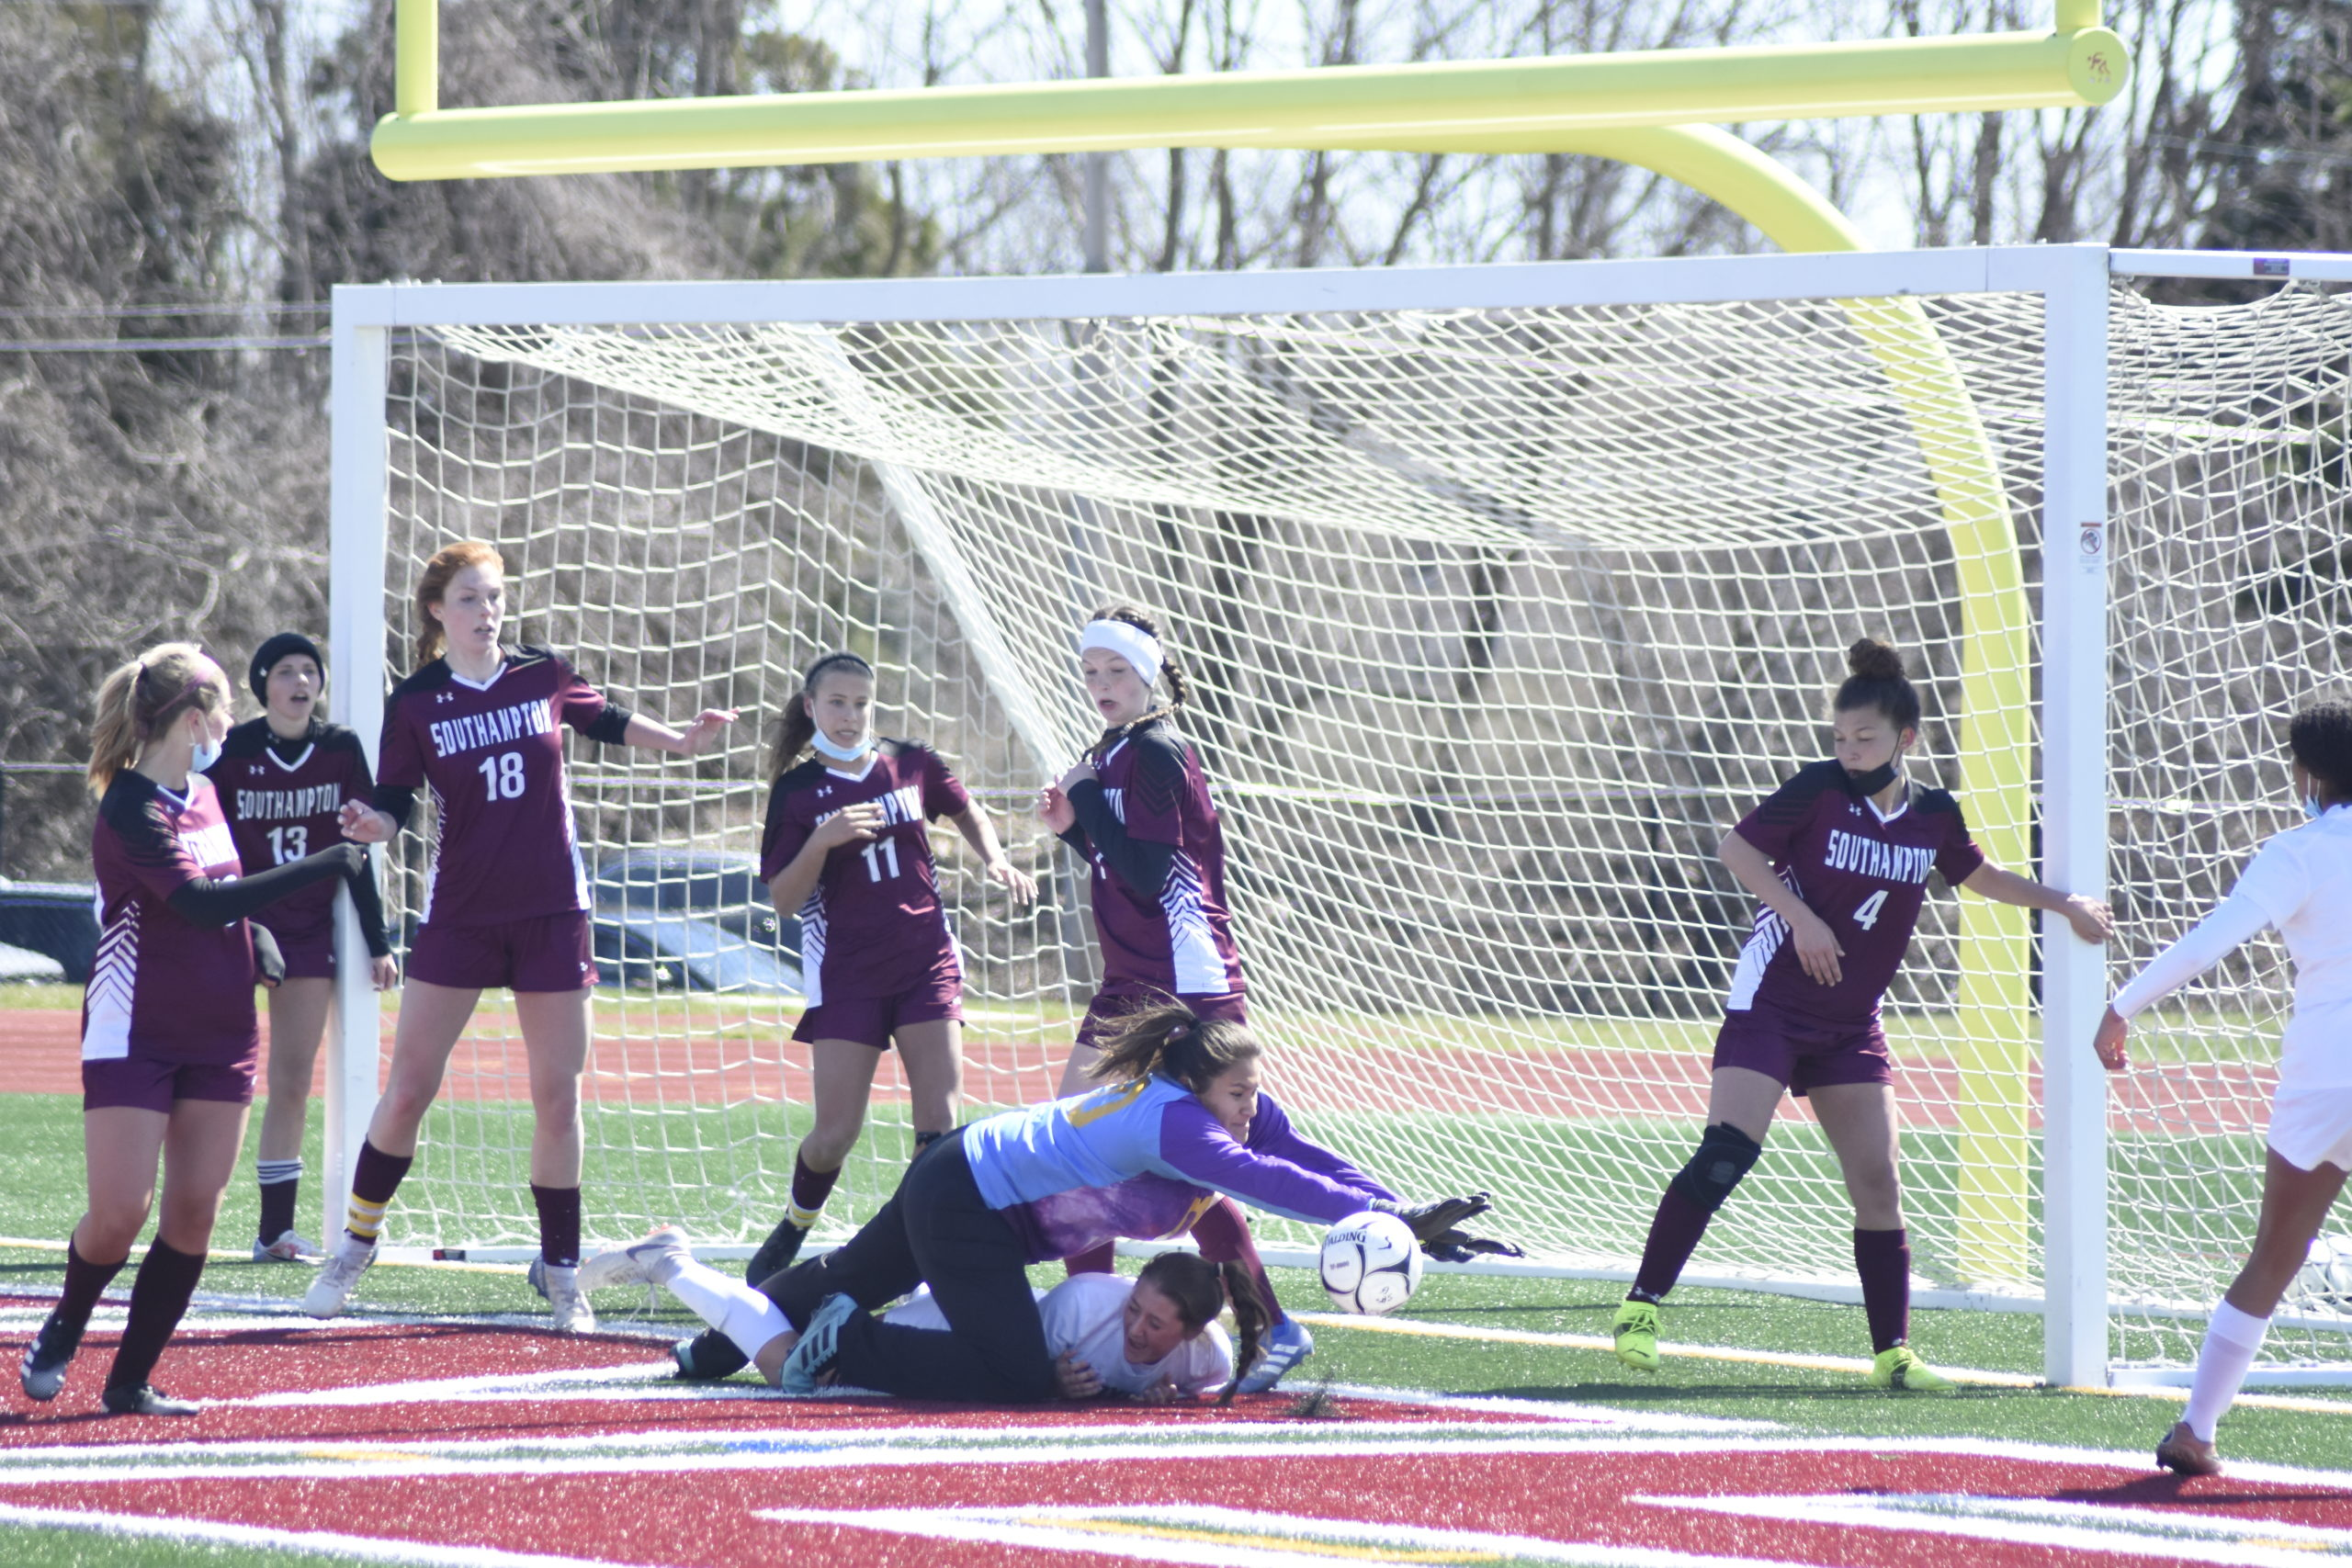 Kendra Jimenez leaps over a Babylon player to quash a corner kick try by the Panthers in the waning seconds of Saturday's game and preserve the 2-0 victory.